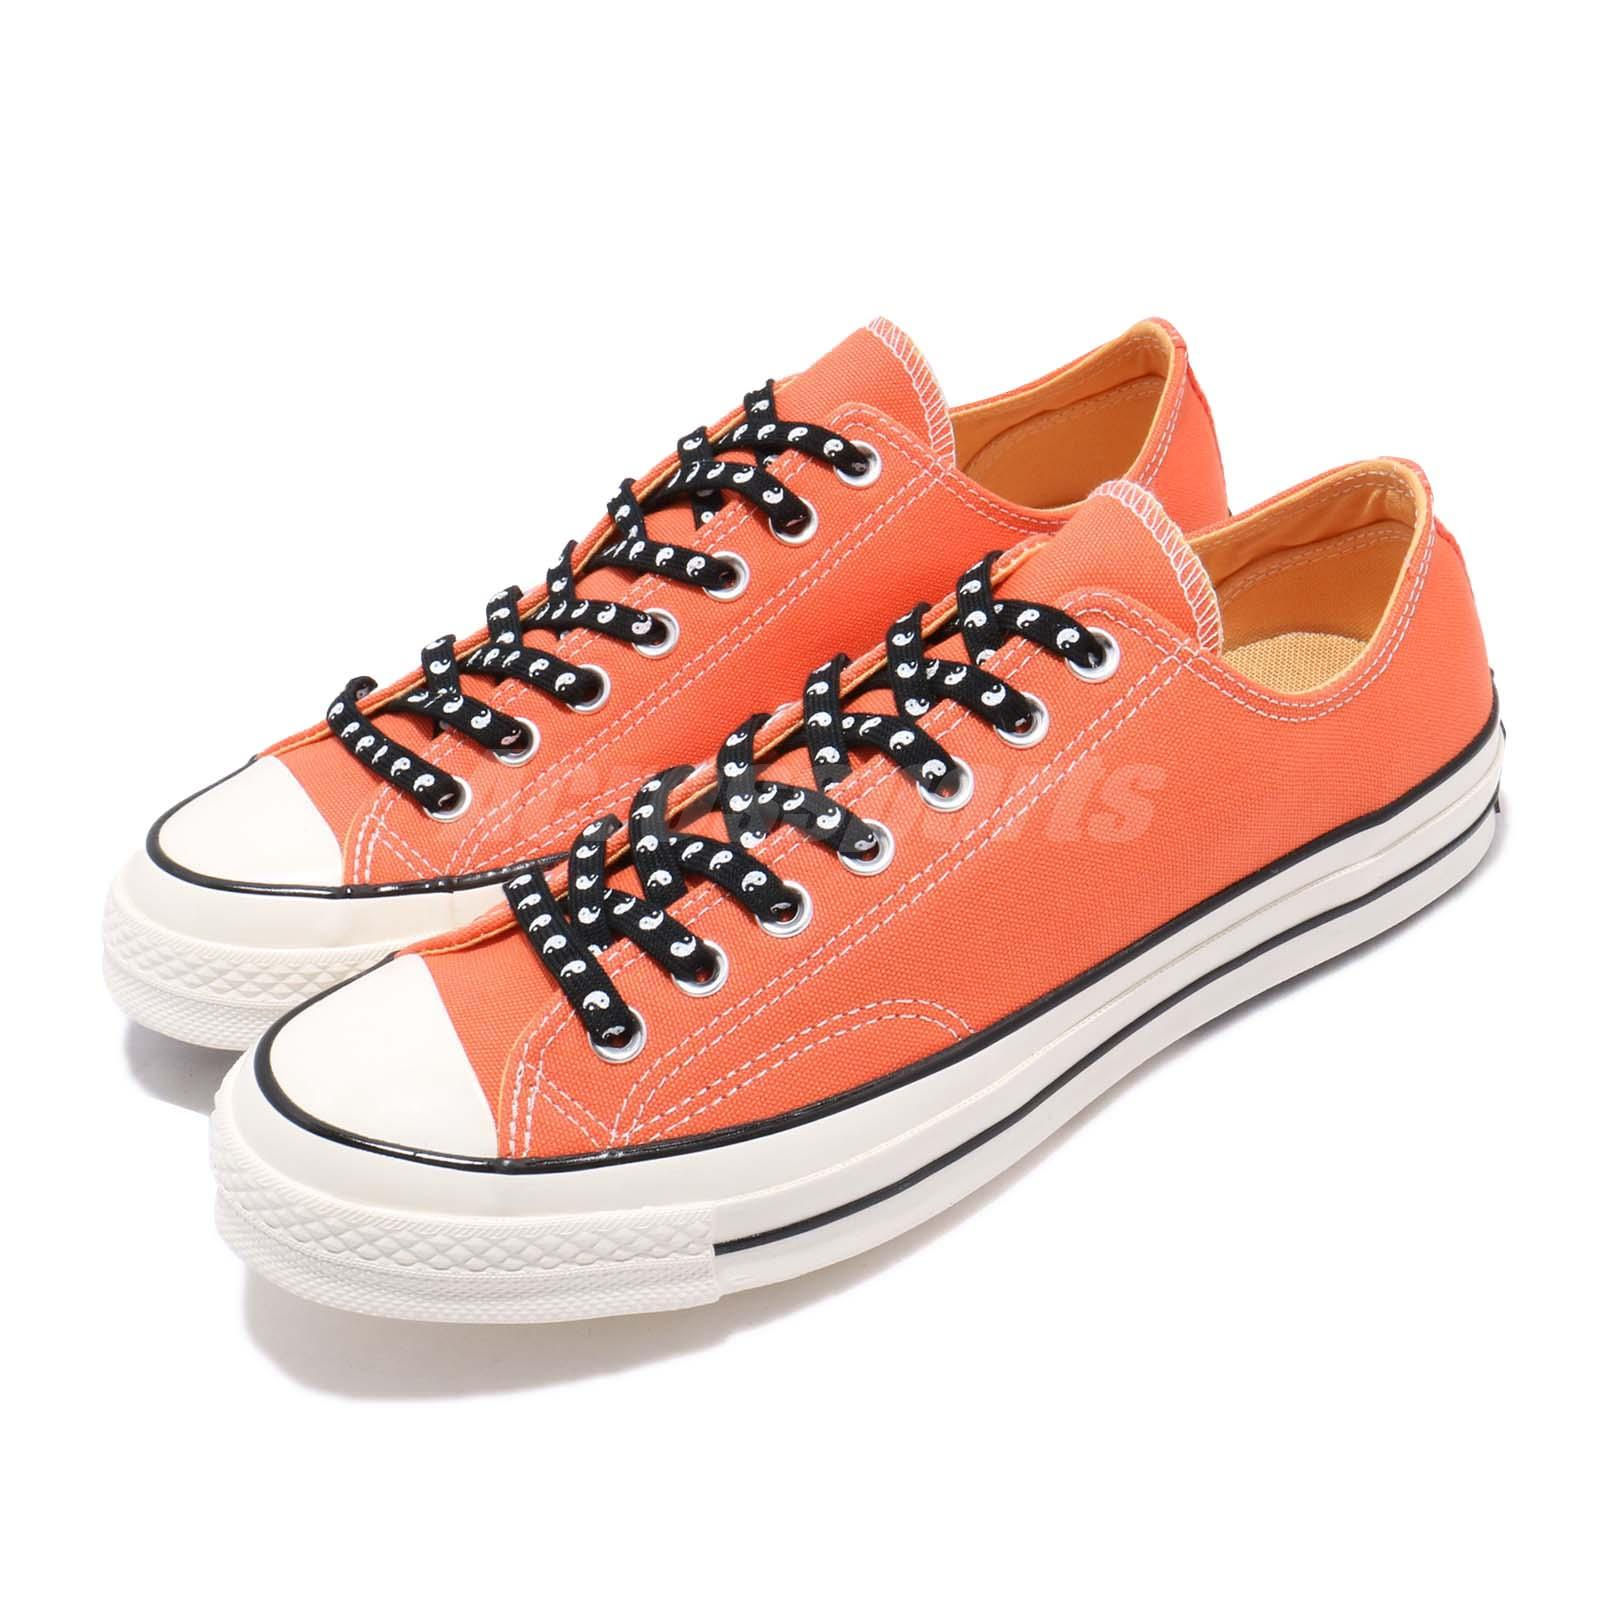 buy popular 4d357 7e484 Details about Converse First String Chuck Taylor All Star 70 OX Orange Men  Women Shoes 164213C